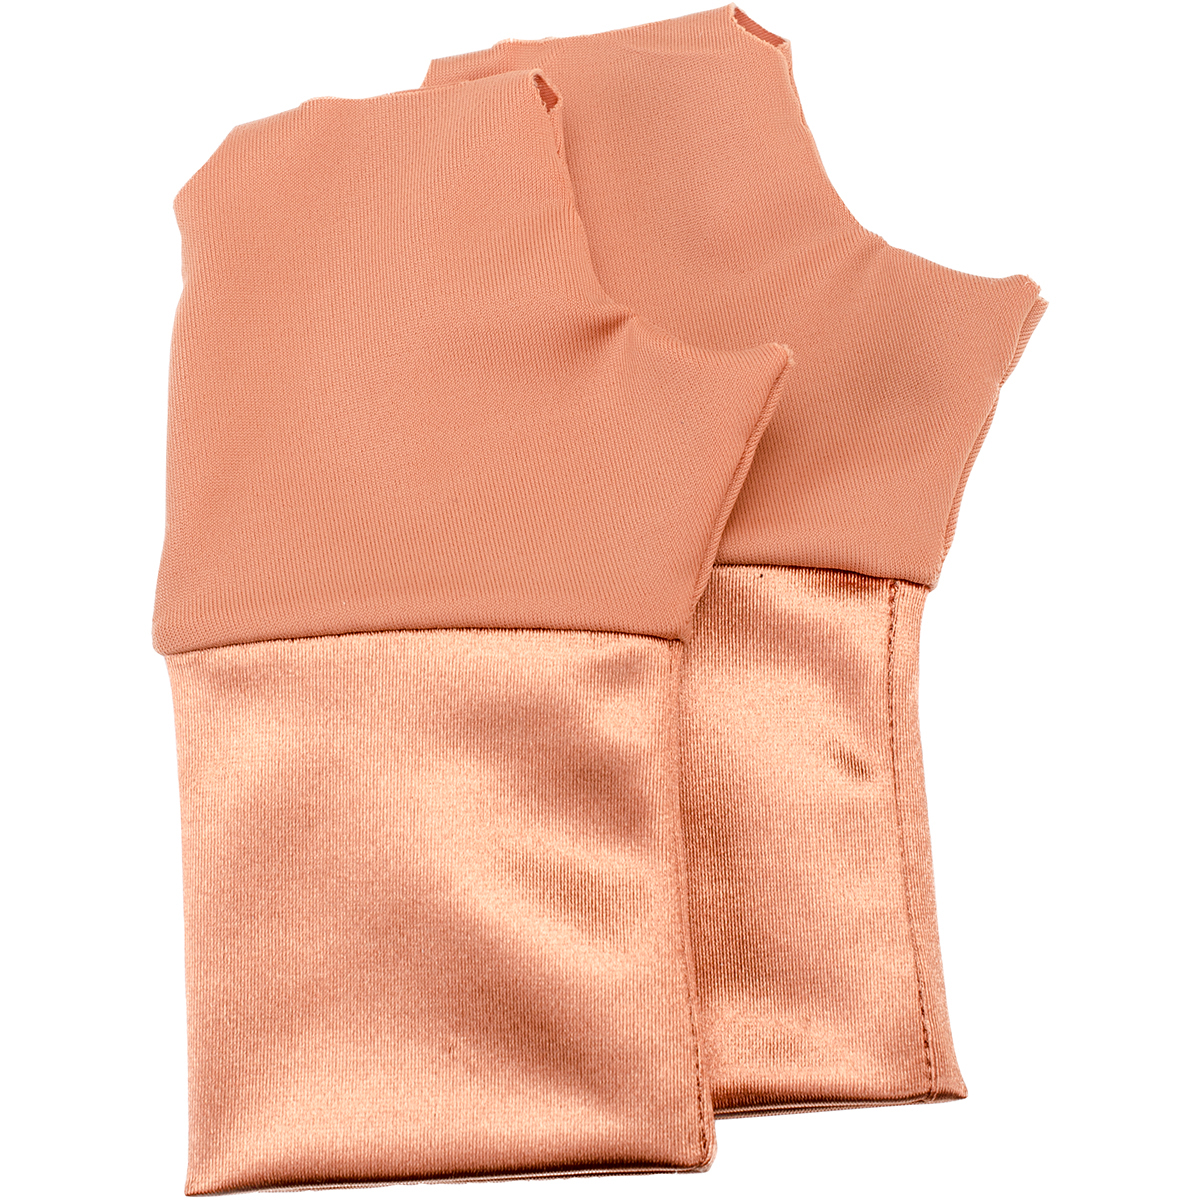 HA-5 Frank A Edmunds Thergonomic Hand-Aids Support Gloves 1 Pair-Extra Large